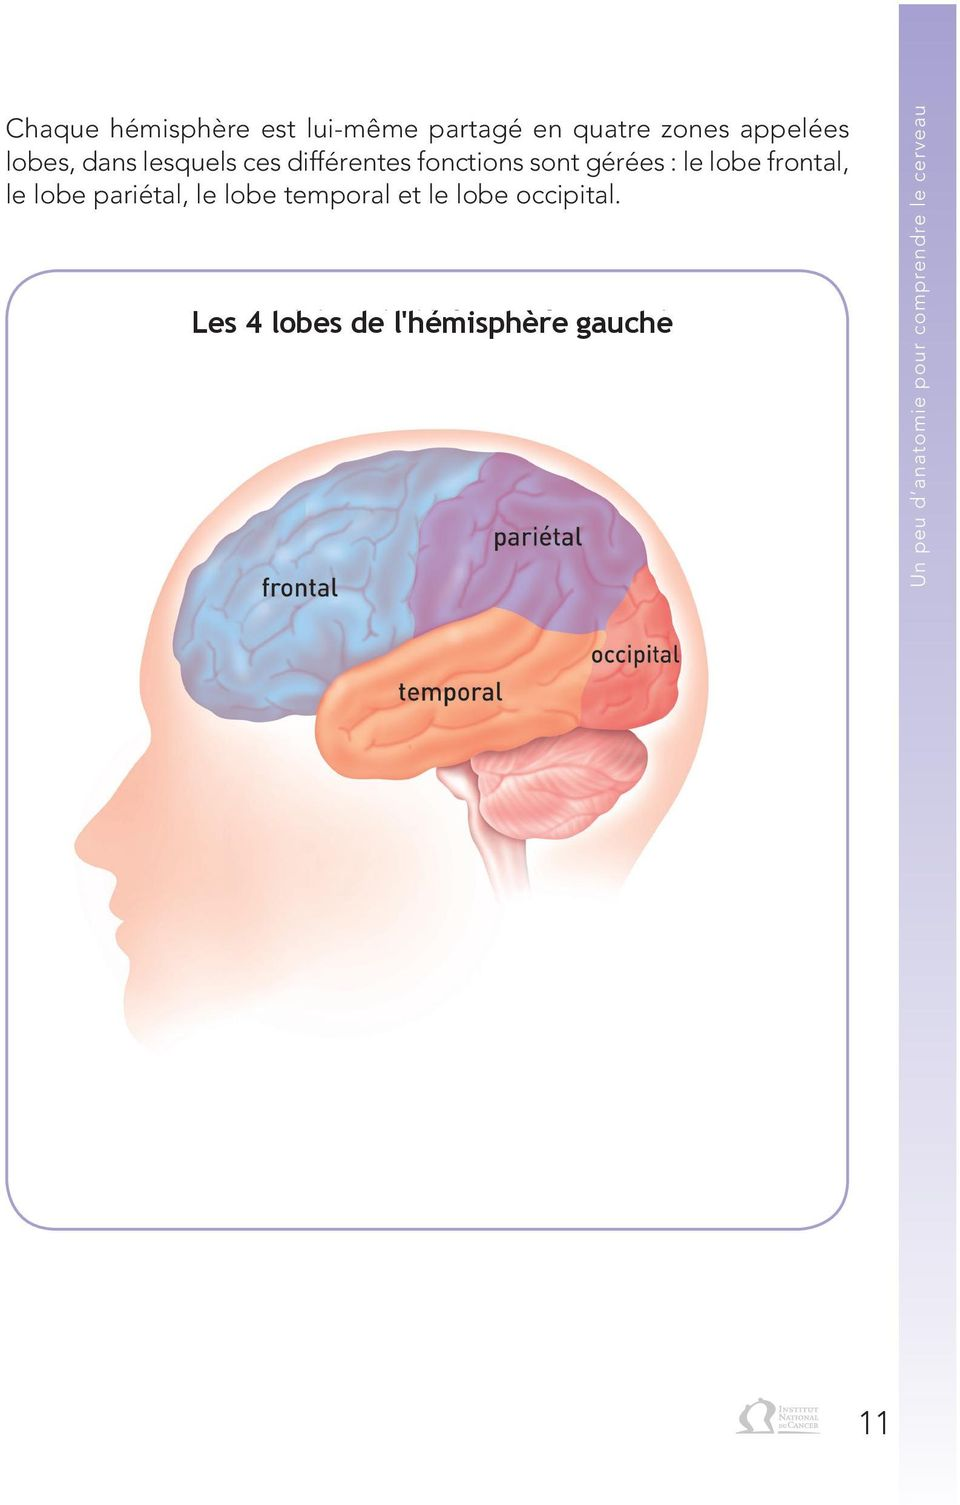 le lobe pariétal, le lobe temporal et le lobe occipital.